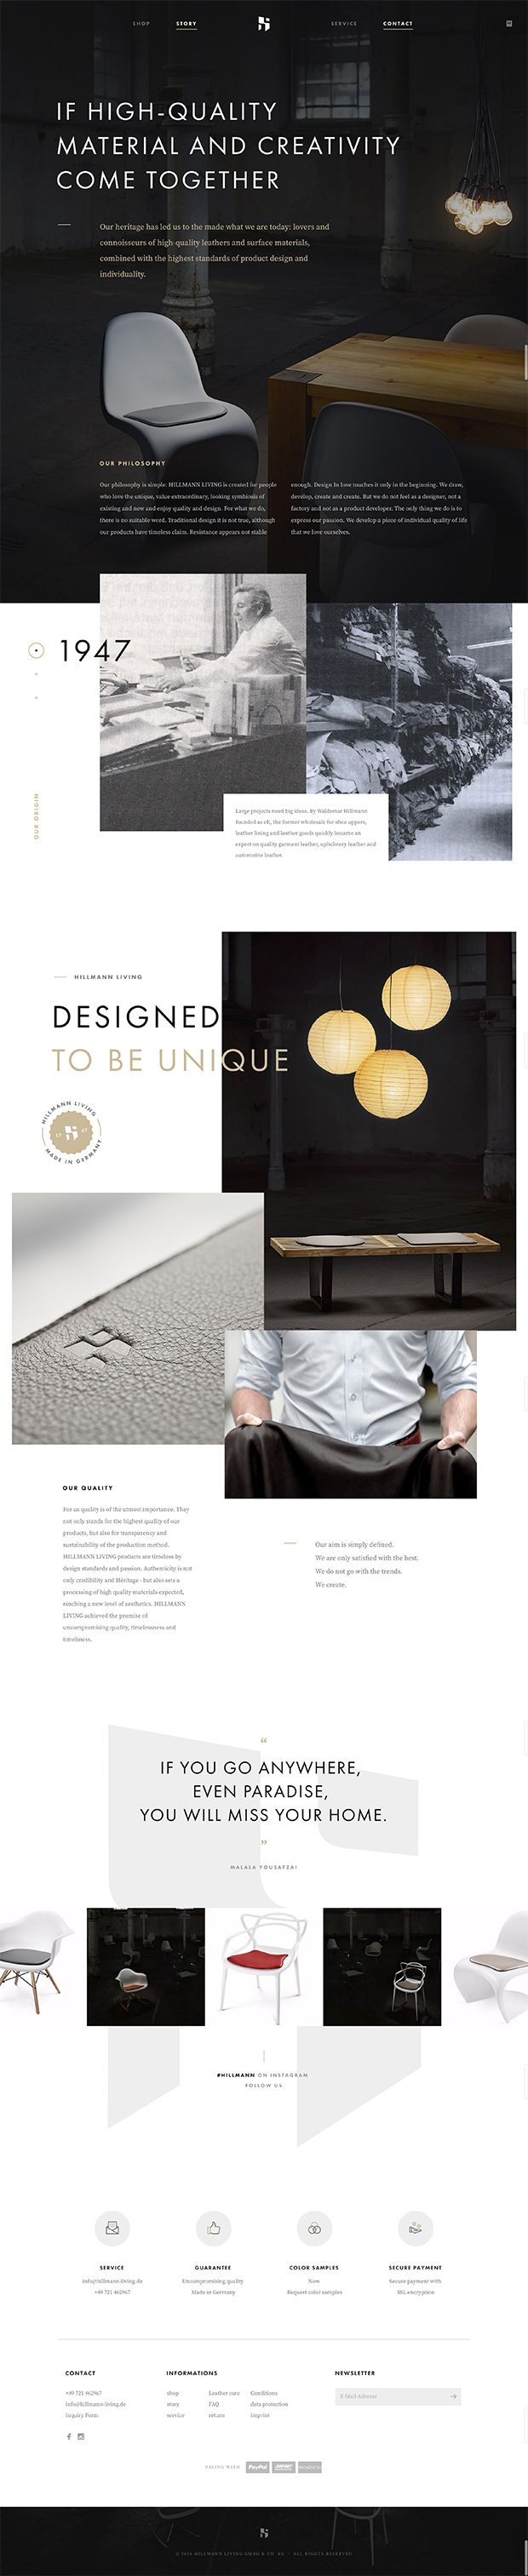 Best About Pages – Showcasing the best of the best about page examples on the web » Hillmann Living